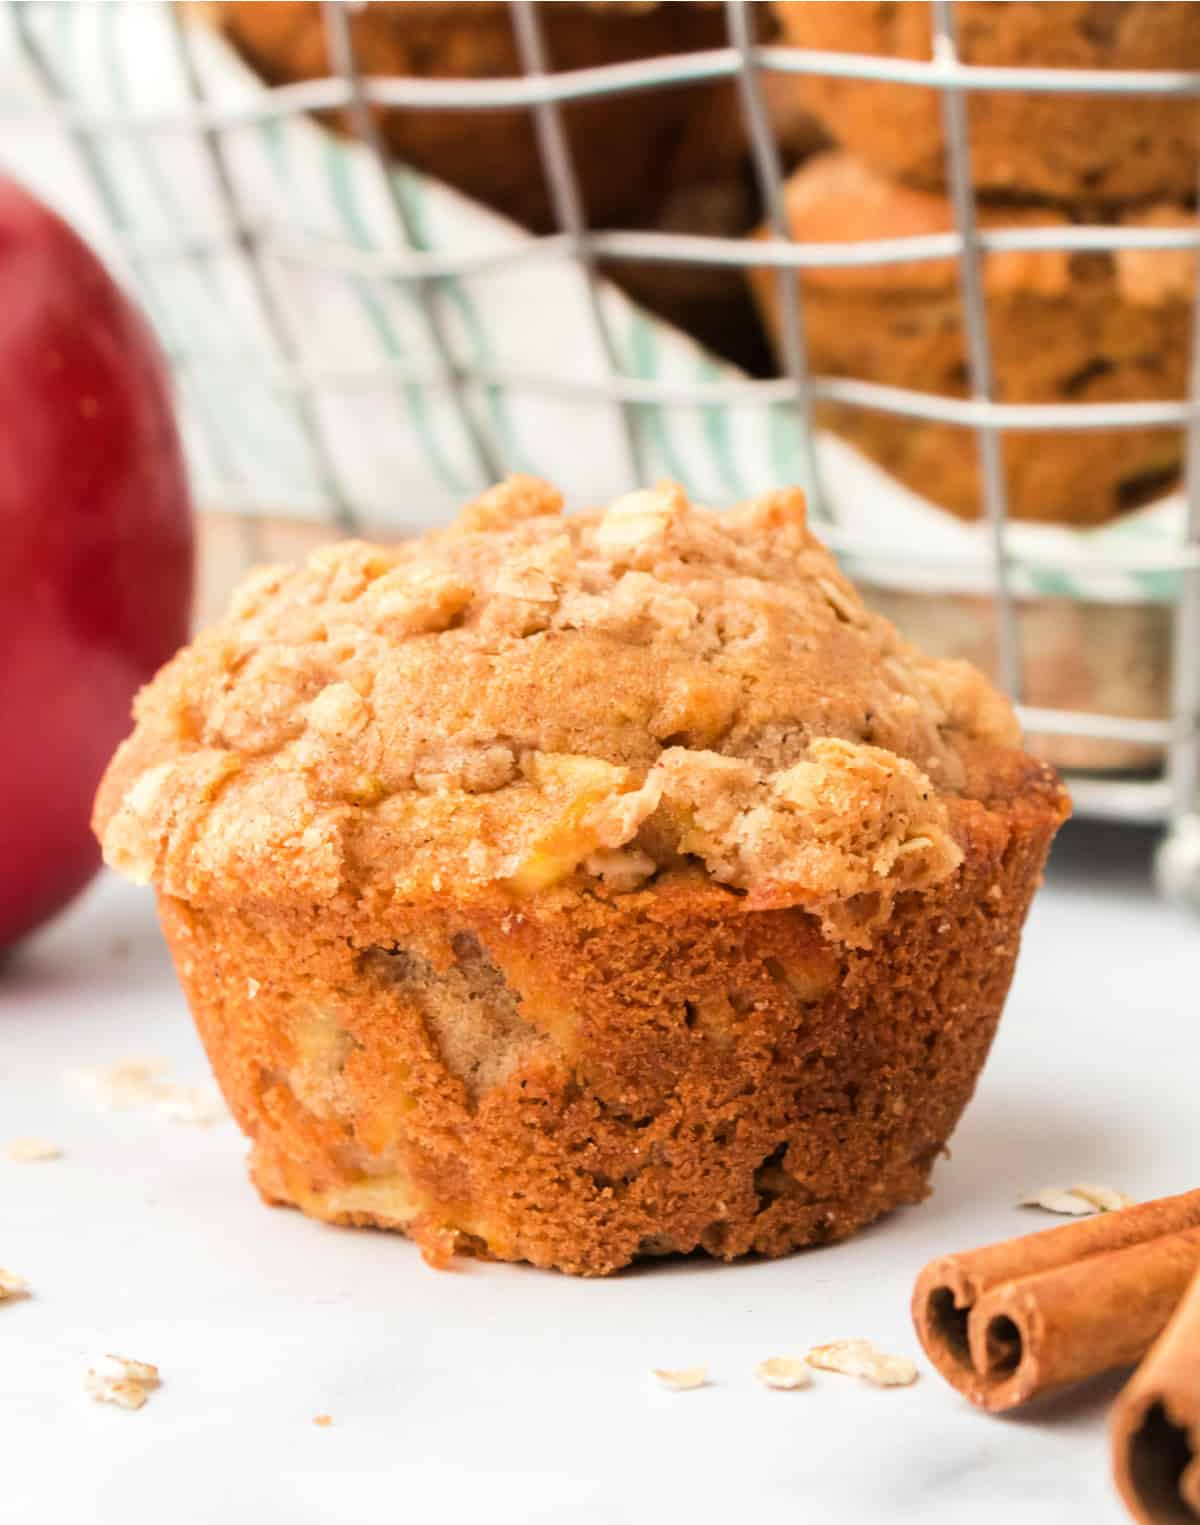 Apple cinnamon muffin with a red apple in the back ground,